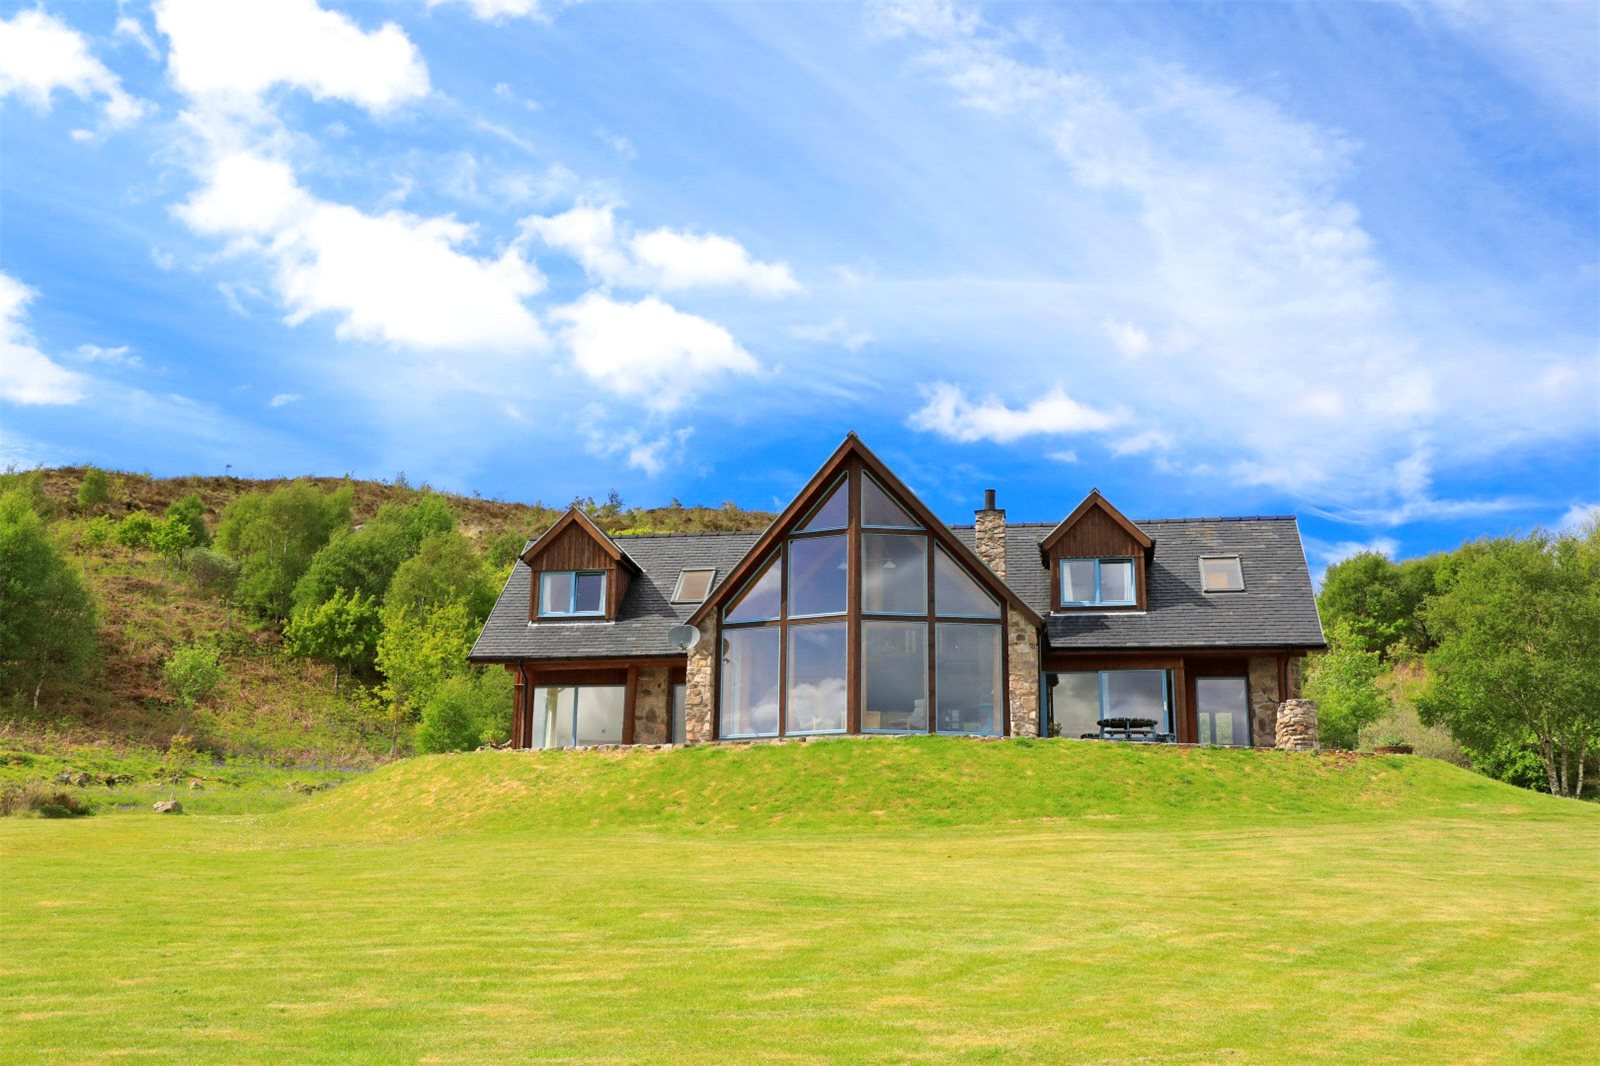 3 Bedrooms Detached House for sale in Aspen Lodge, Glenborrodale, Acharacle, PH36